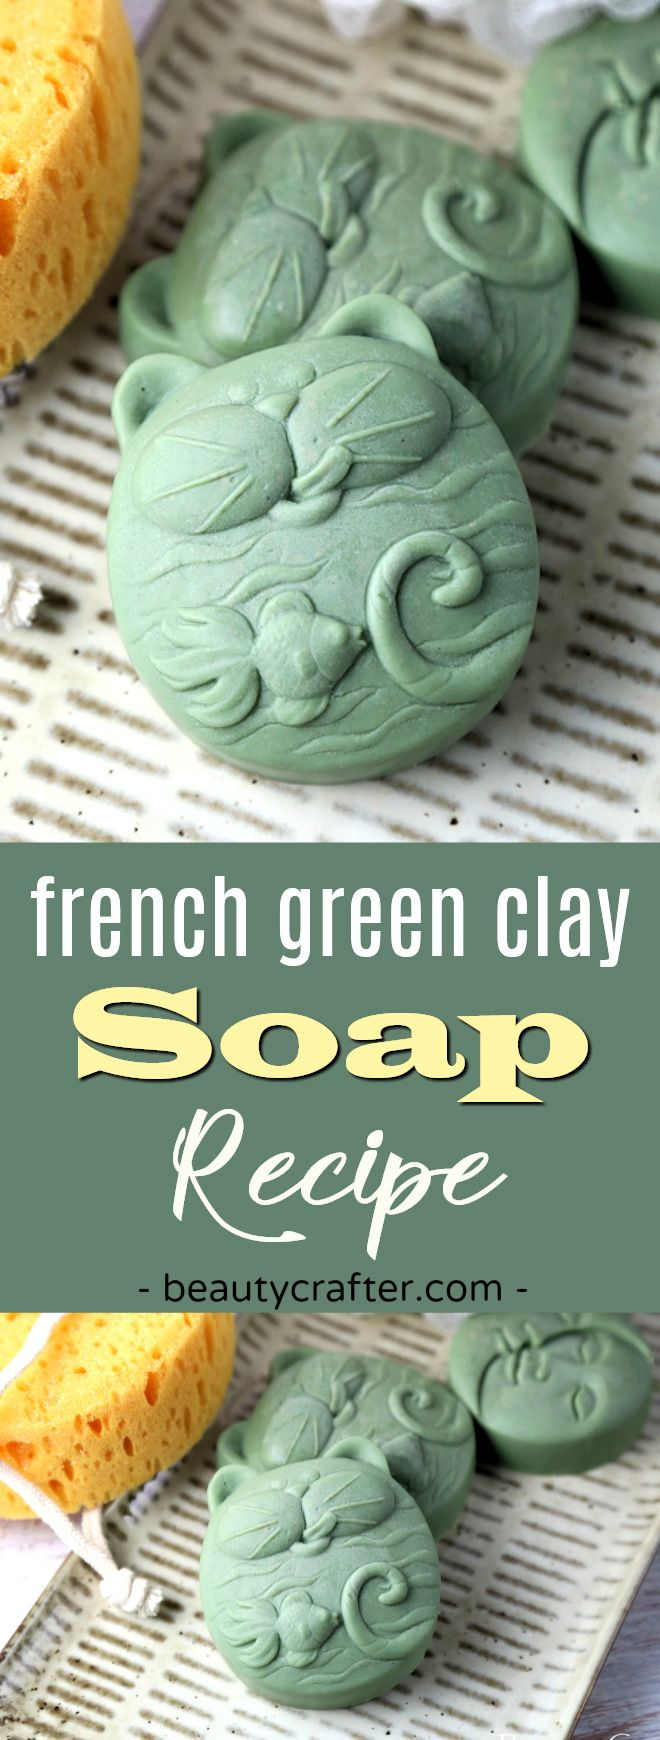 French Green clay soap recipe - Sea clay DIY soap is detoxifying and healing. Great for eczema. Made in a fun cat soap mold. #soap #soapmaking #cats #skincare #catlady #crafts  via @beautycrafts